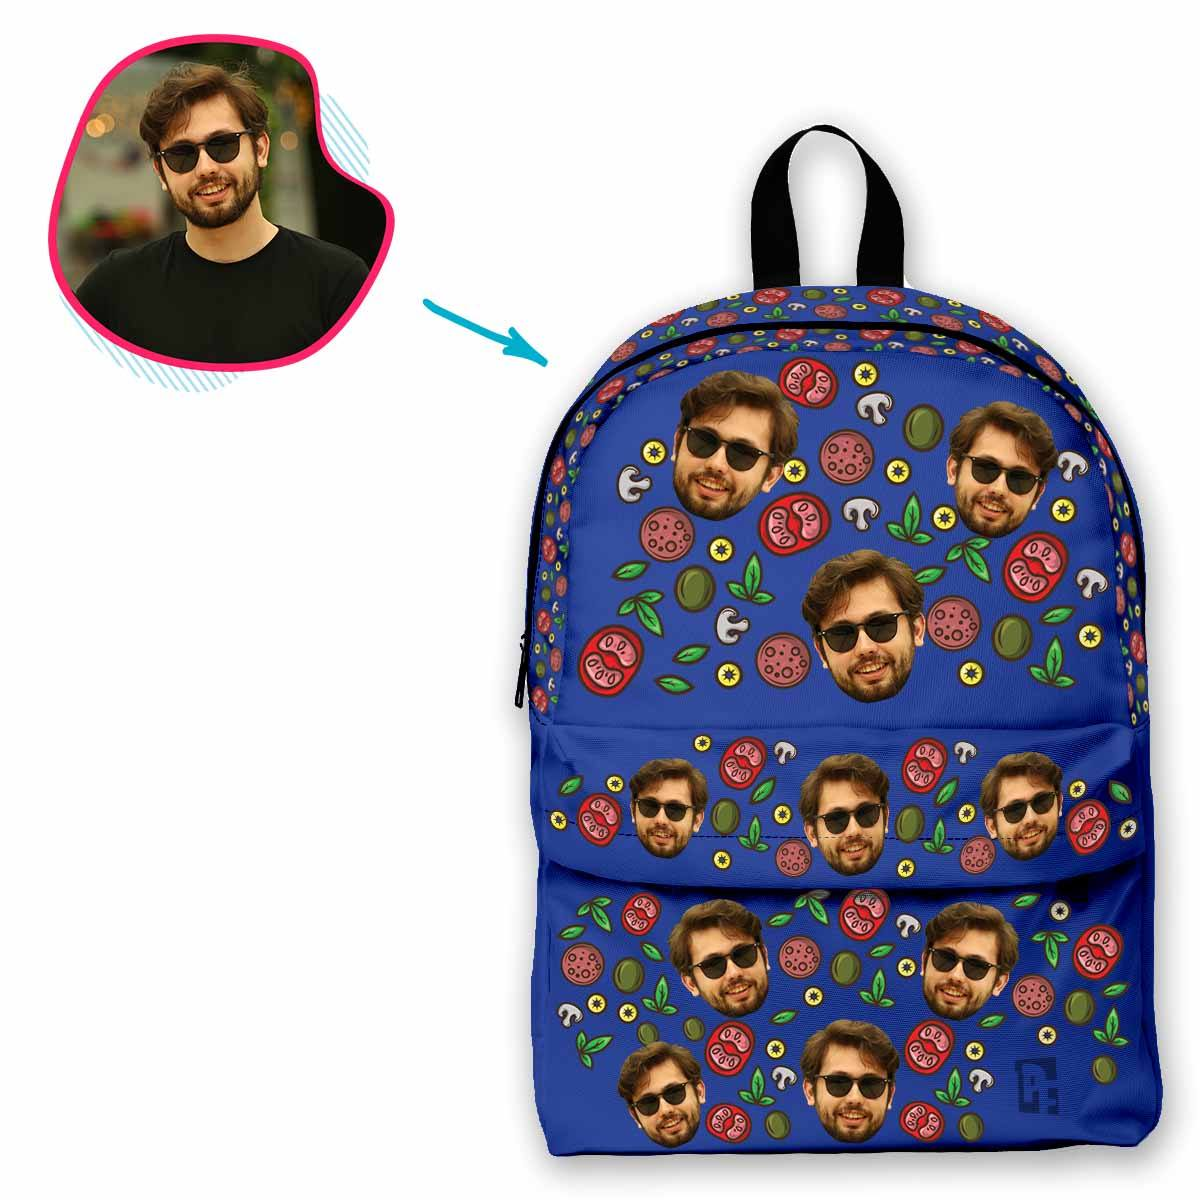 darkblue Pizza classic backpack personalized with photo of face printed on it